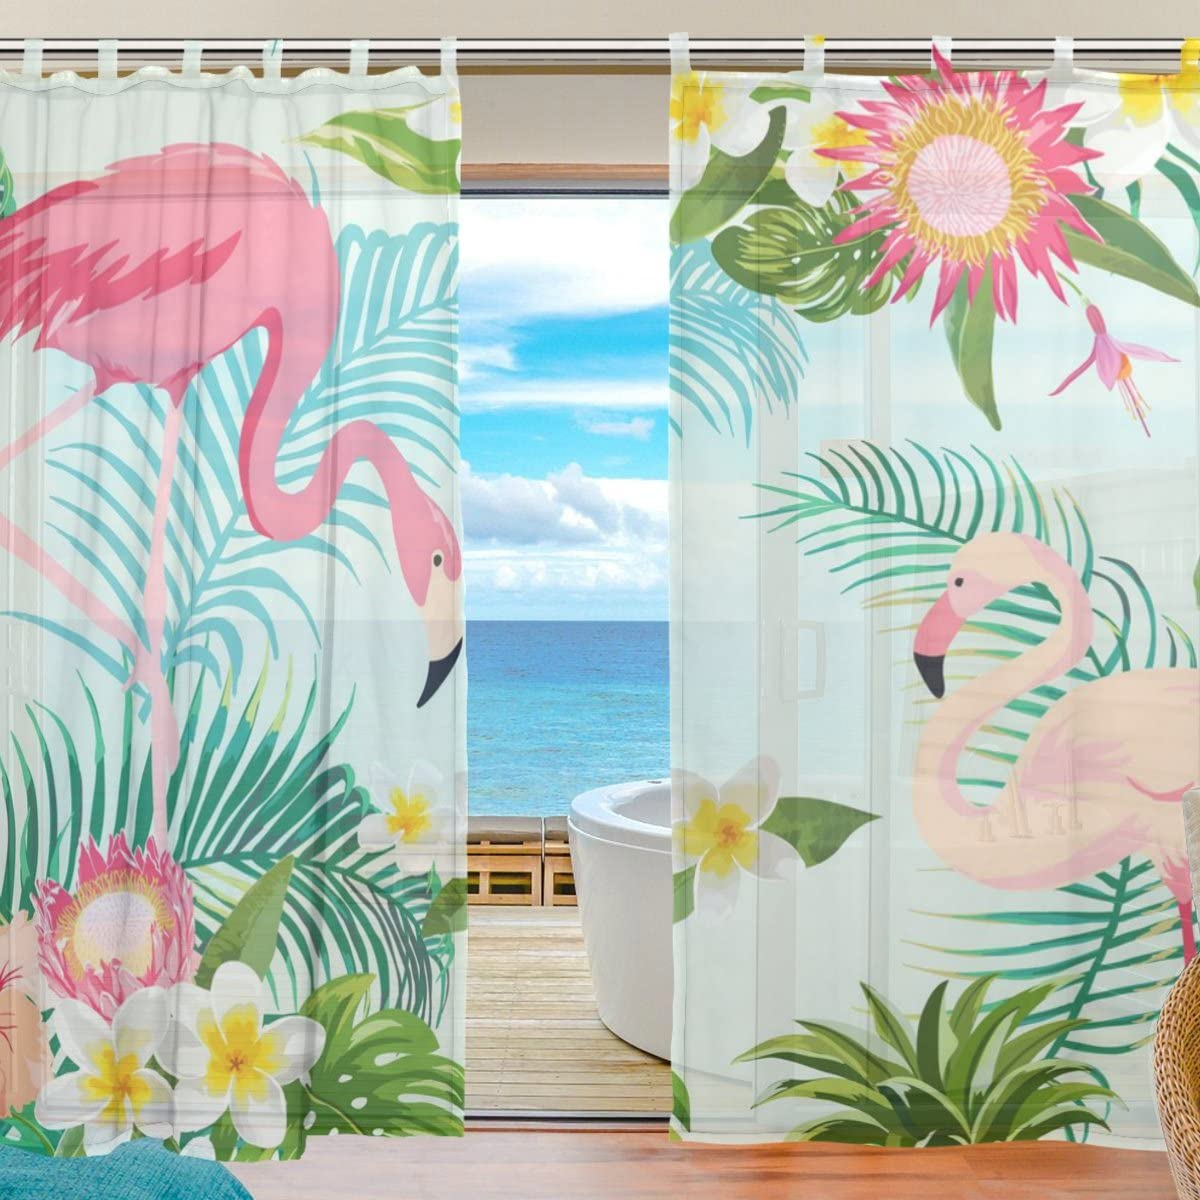 JSTEL 2-Piece Leaf Flower Flamingos Pattern Print Tulle Polyester Door Voile Window Curtain Sheer Curtain Panels for Bedroom Decor Living Room Drape Two Panels Set 55×78 inch